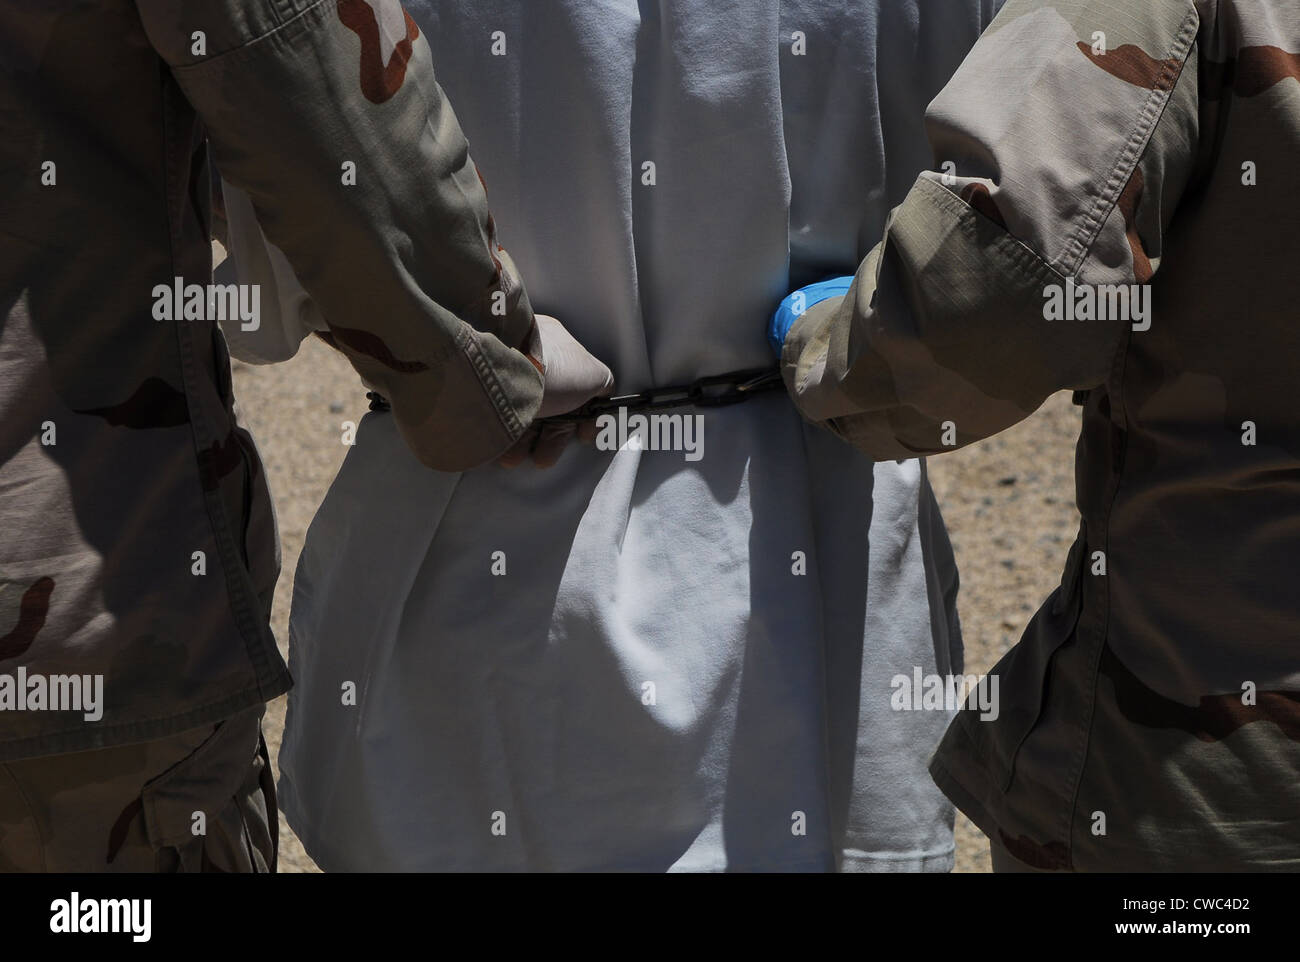 U.S. Sailors both grasping the chain around a detainee's waist escort him to a legal appointment at Camp Delta - Stock Image